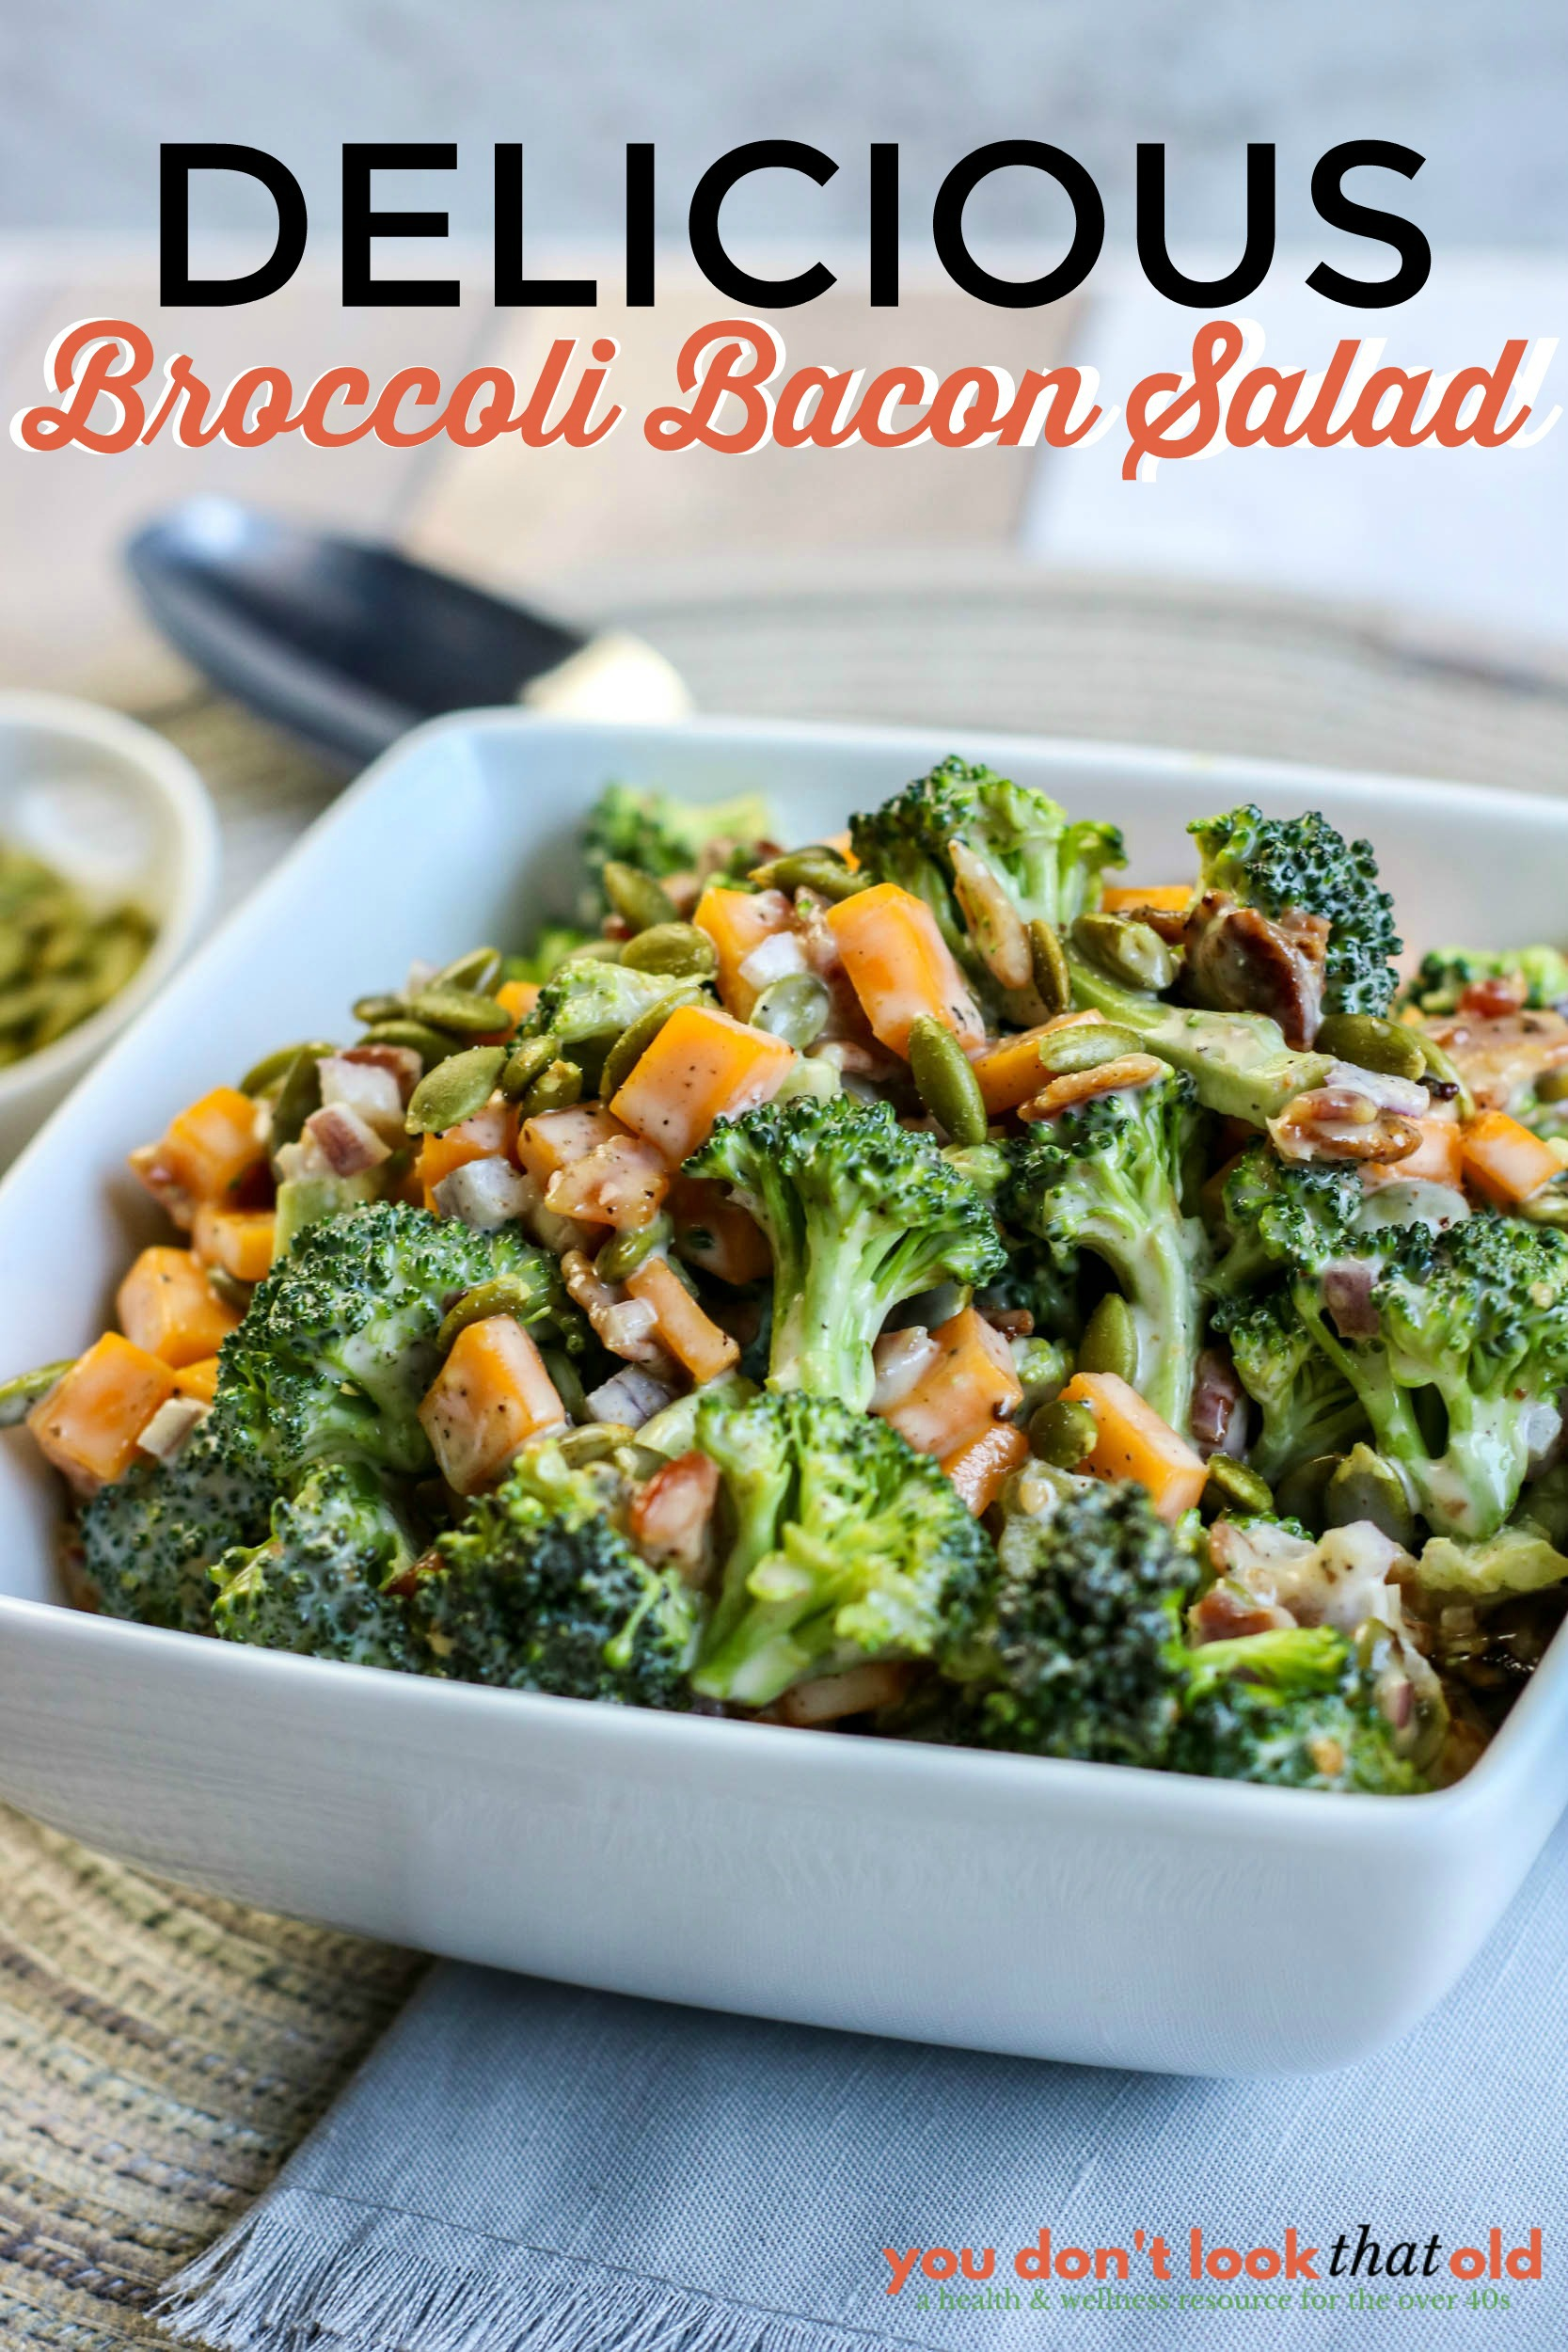 How to make an easy & delicious broccoli bacon salad for any occasion any time of the year.